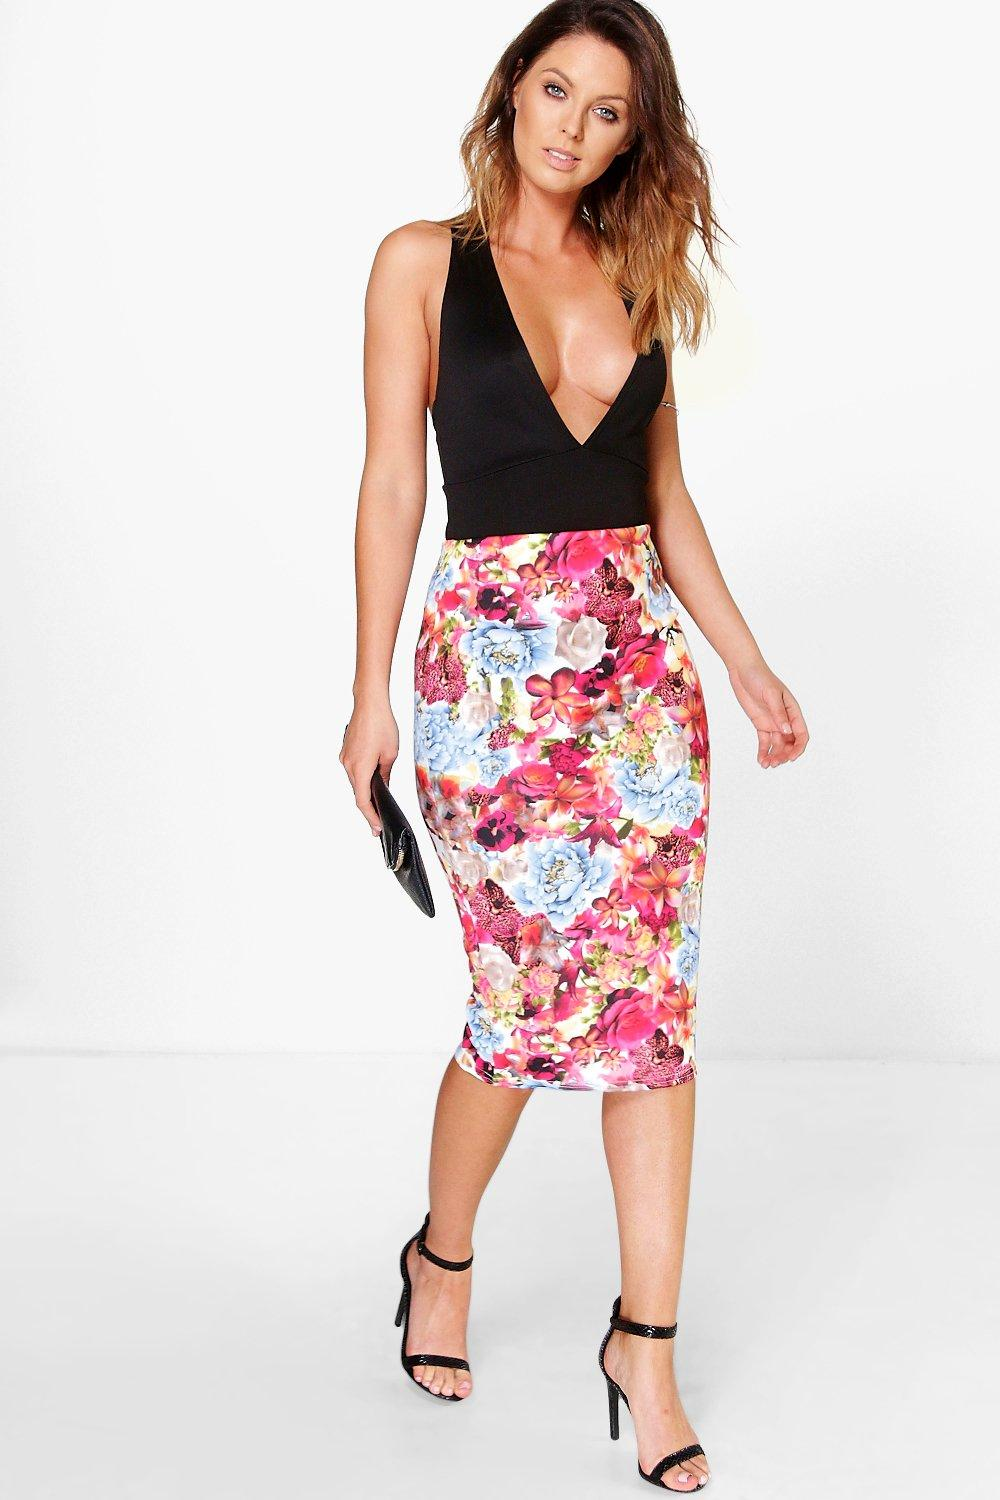 Alice Bright Floral Bodycon Midi Skirt